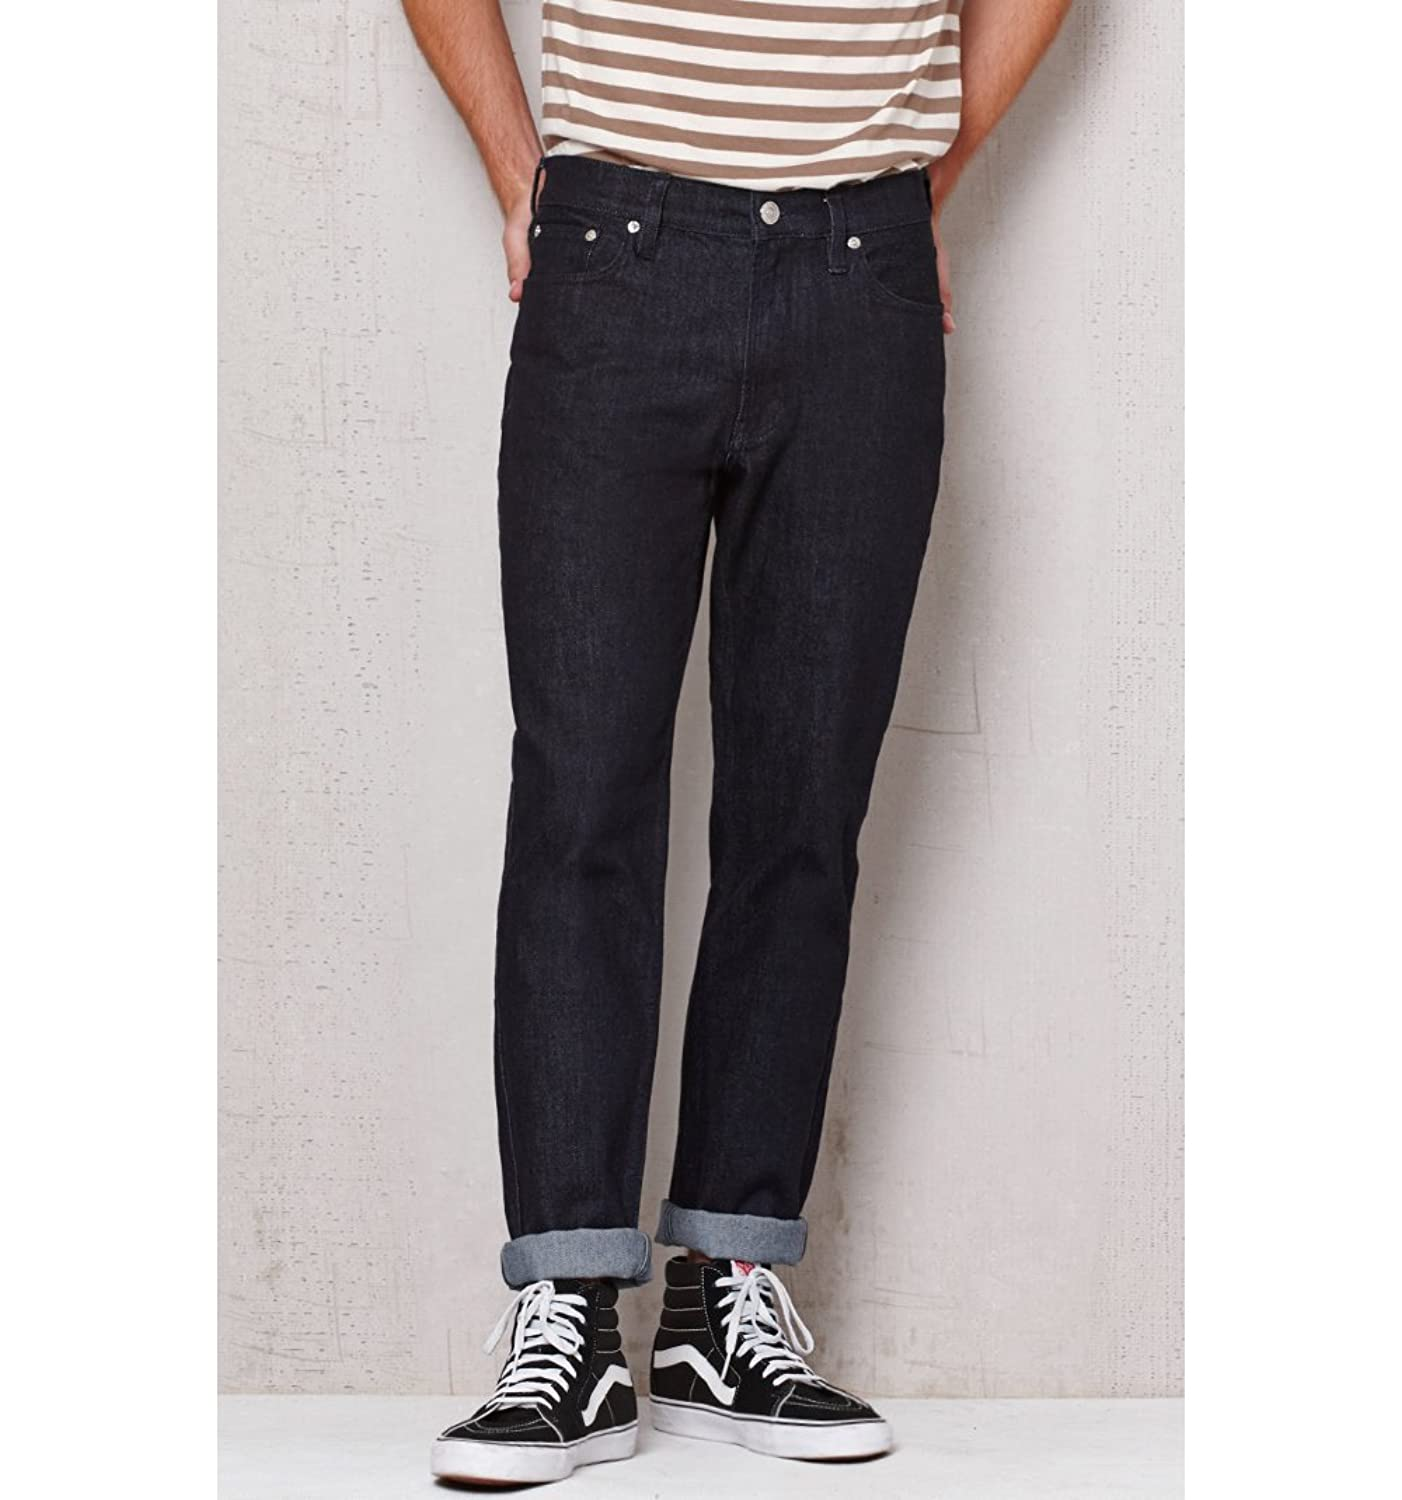 Pacsun Mens Straight Rinse Stretch Jeans